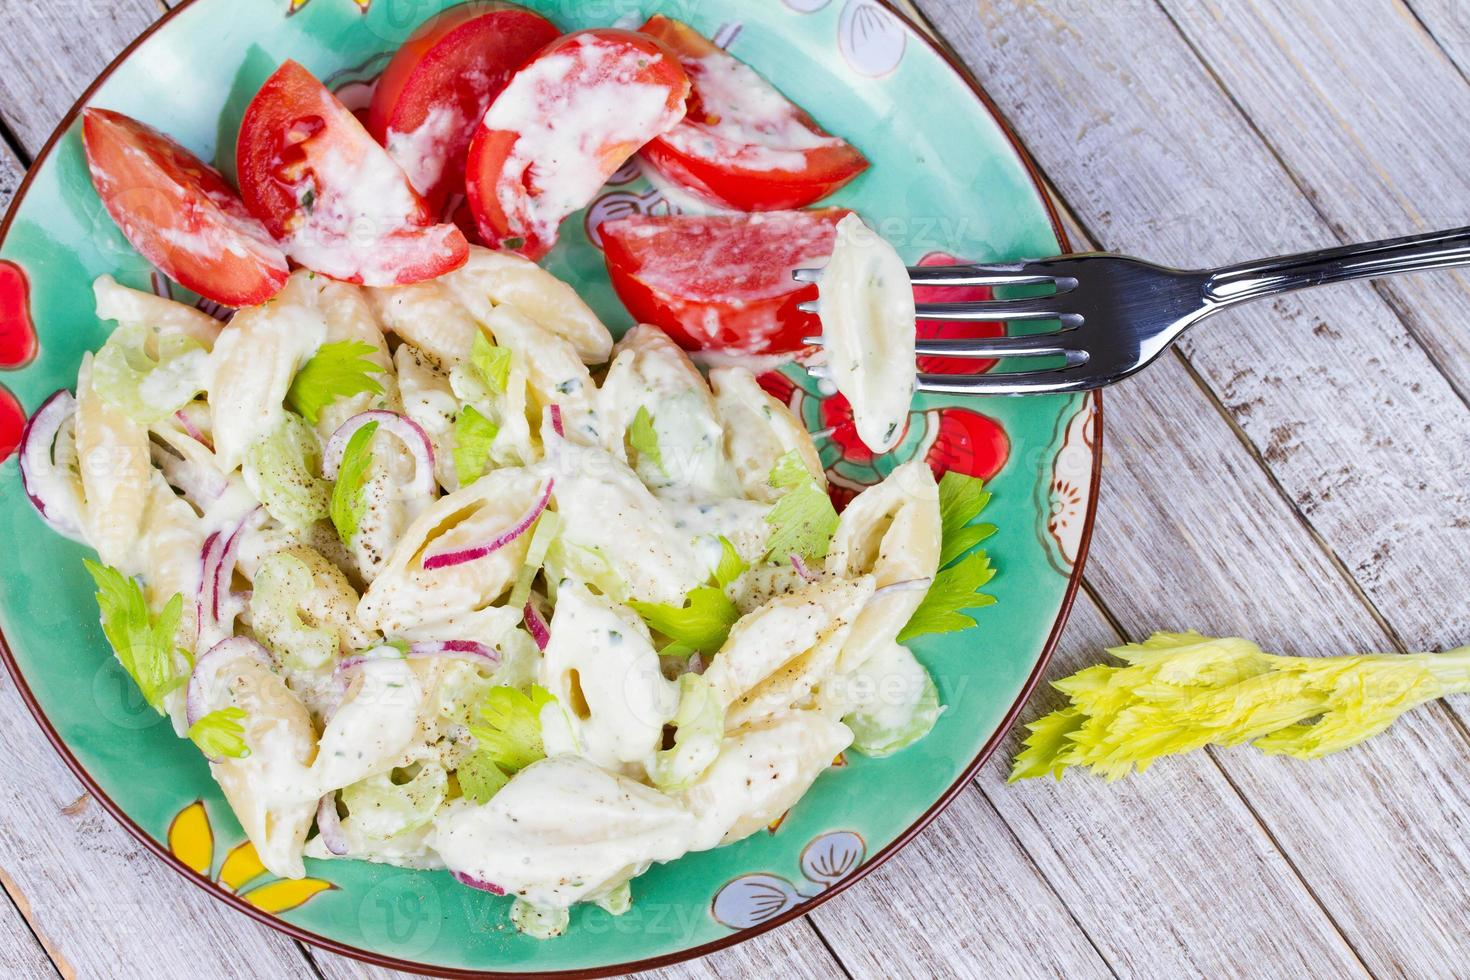 Creamy Pasta Salad with Celery and Red Onion photo